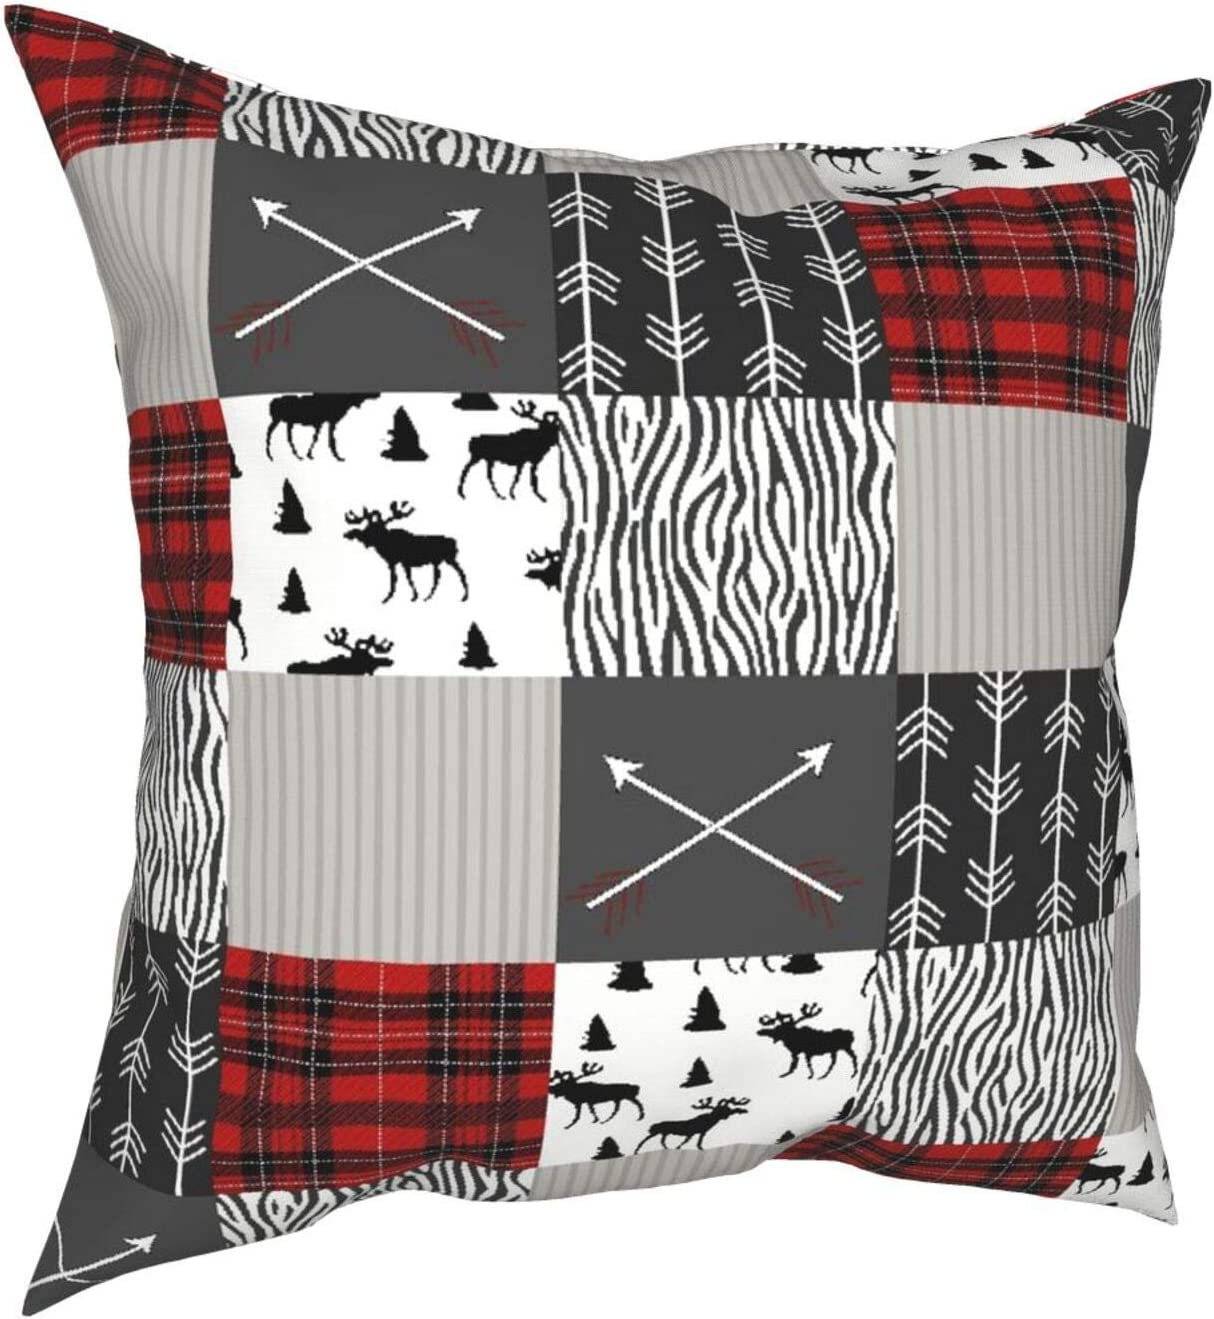 Throw Pillow Cover Case,Wildlife Animal Moose With Black And Red Woodland Plaid Arrow Rustic Patch,Modern Pillowcase Sofa Couch Bed Car Set Home Decor 18